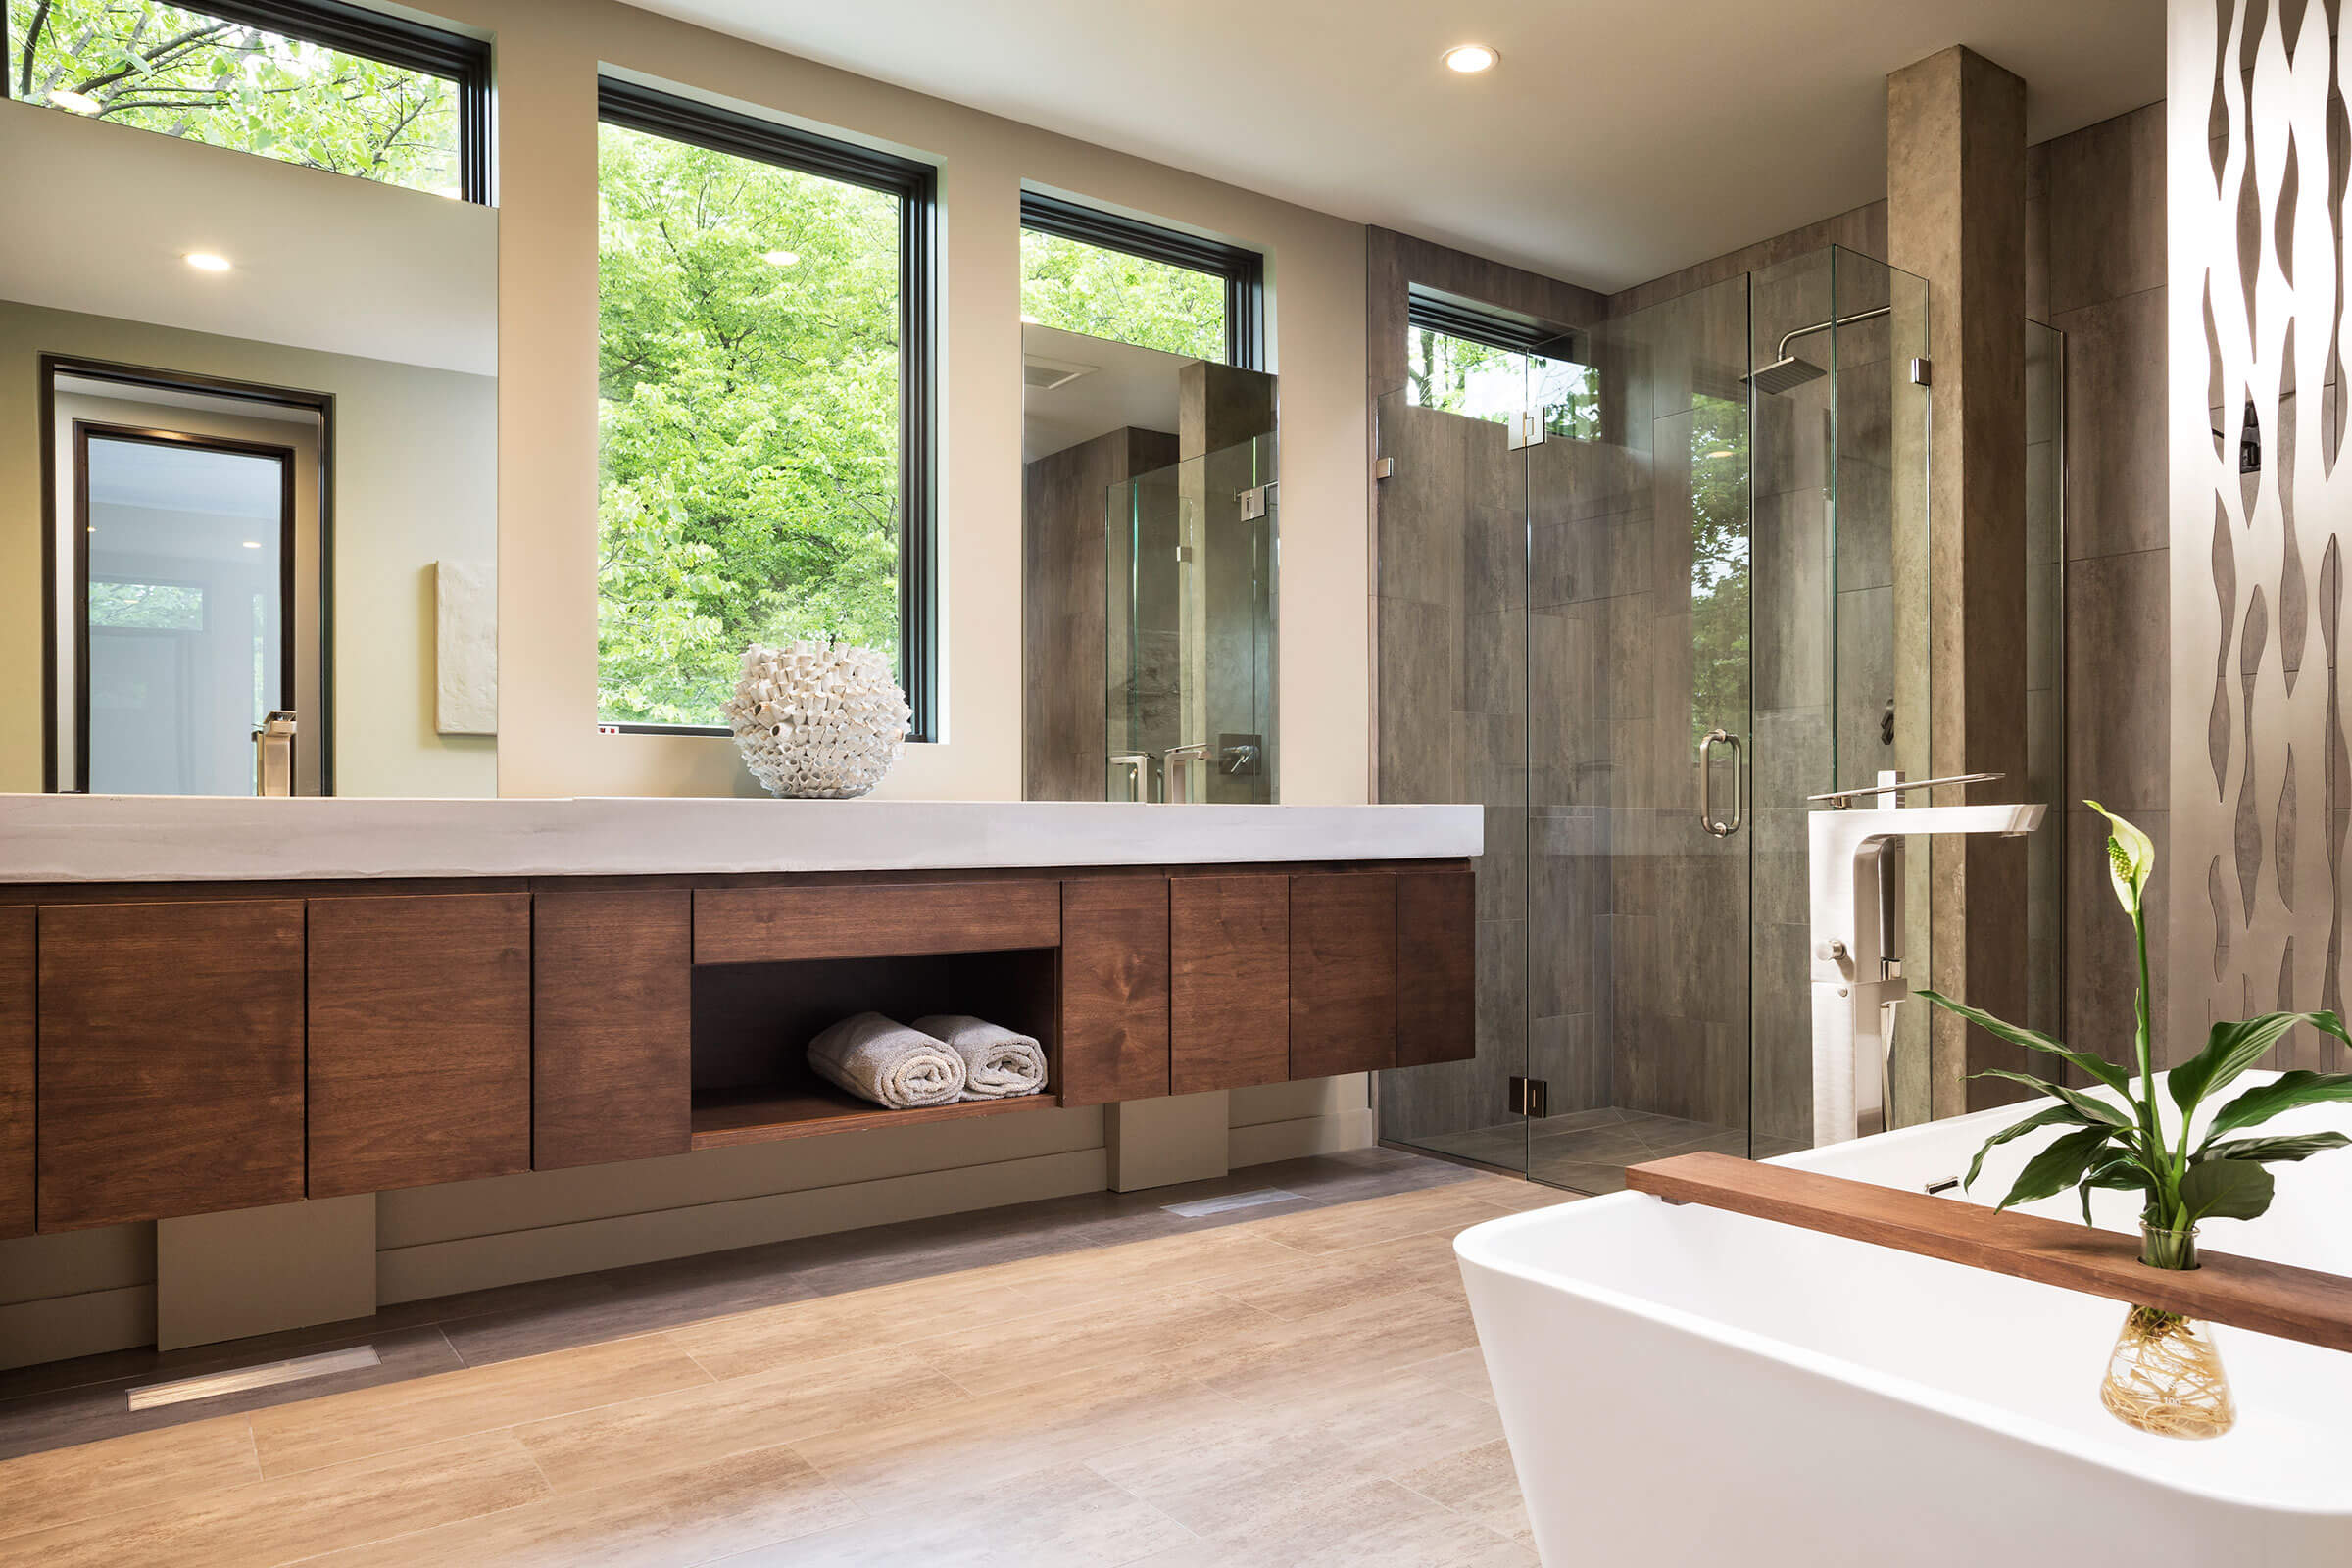 Bathroom With Elevate Casement Windows